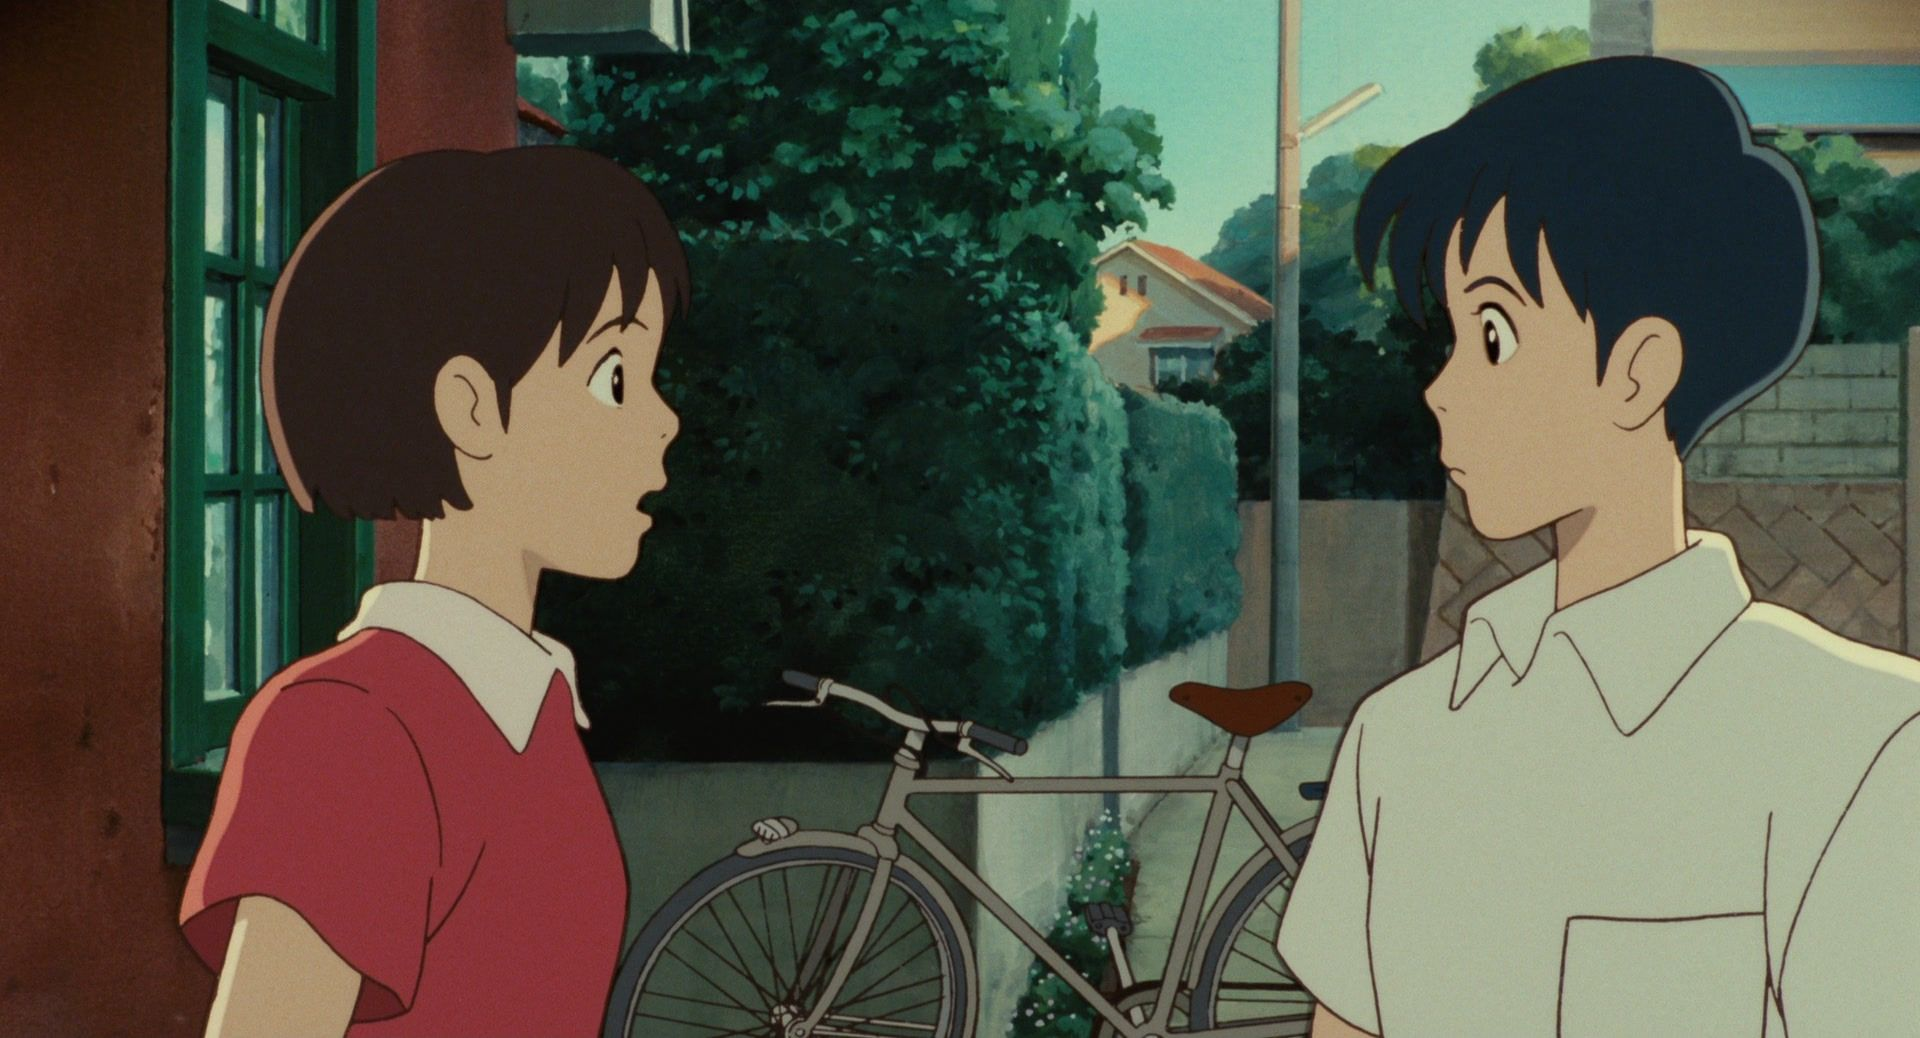 Images Screencaps And Wallpapers For Whisper Of The Heart In 2021 Studio Ghibli Characters Ghibli Movies Studio Ghibli Download yovoy anime live wallpaper